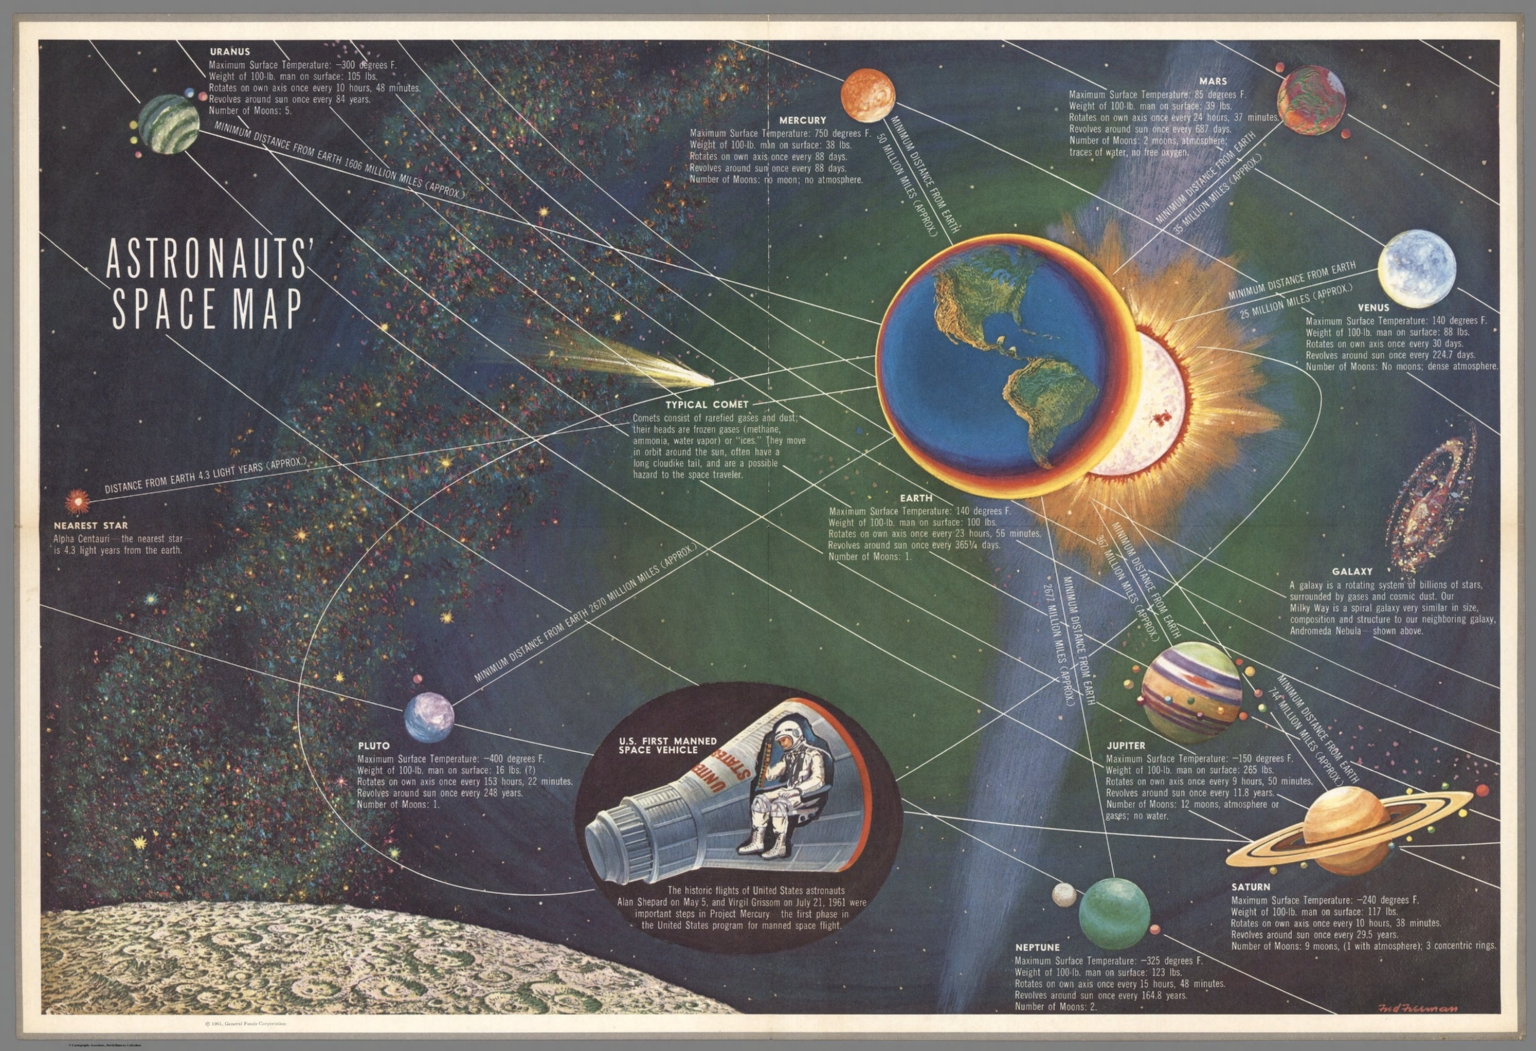 Astronauts Space Map David Rumsey Historical Map Collection - Space map